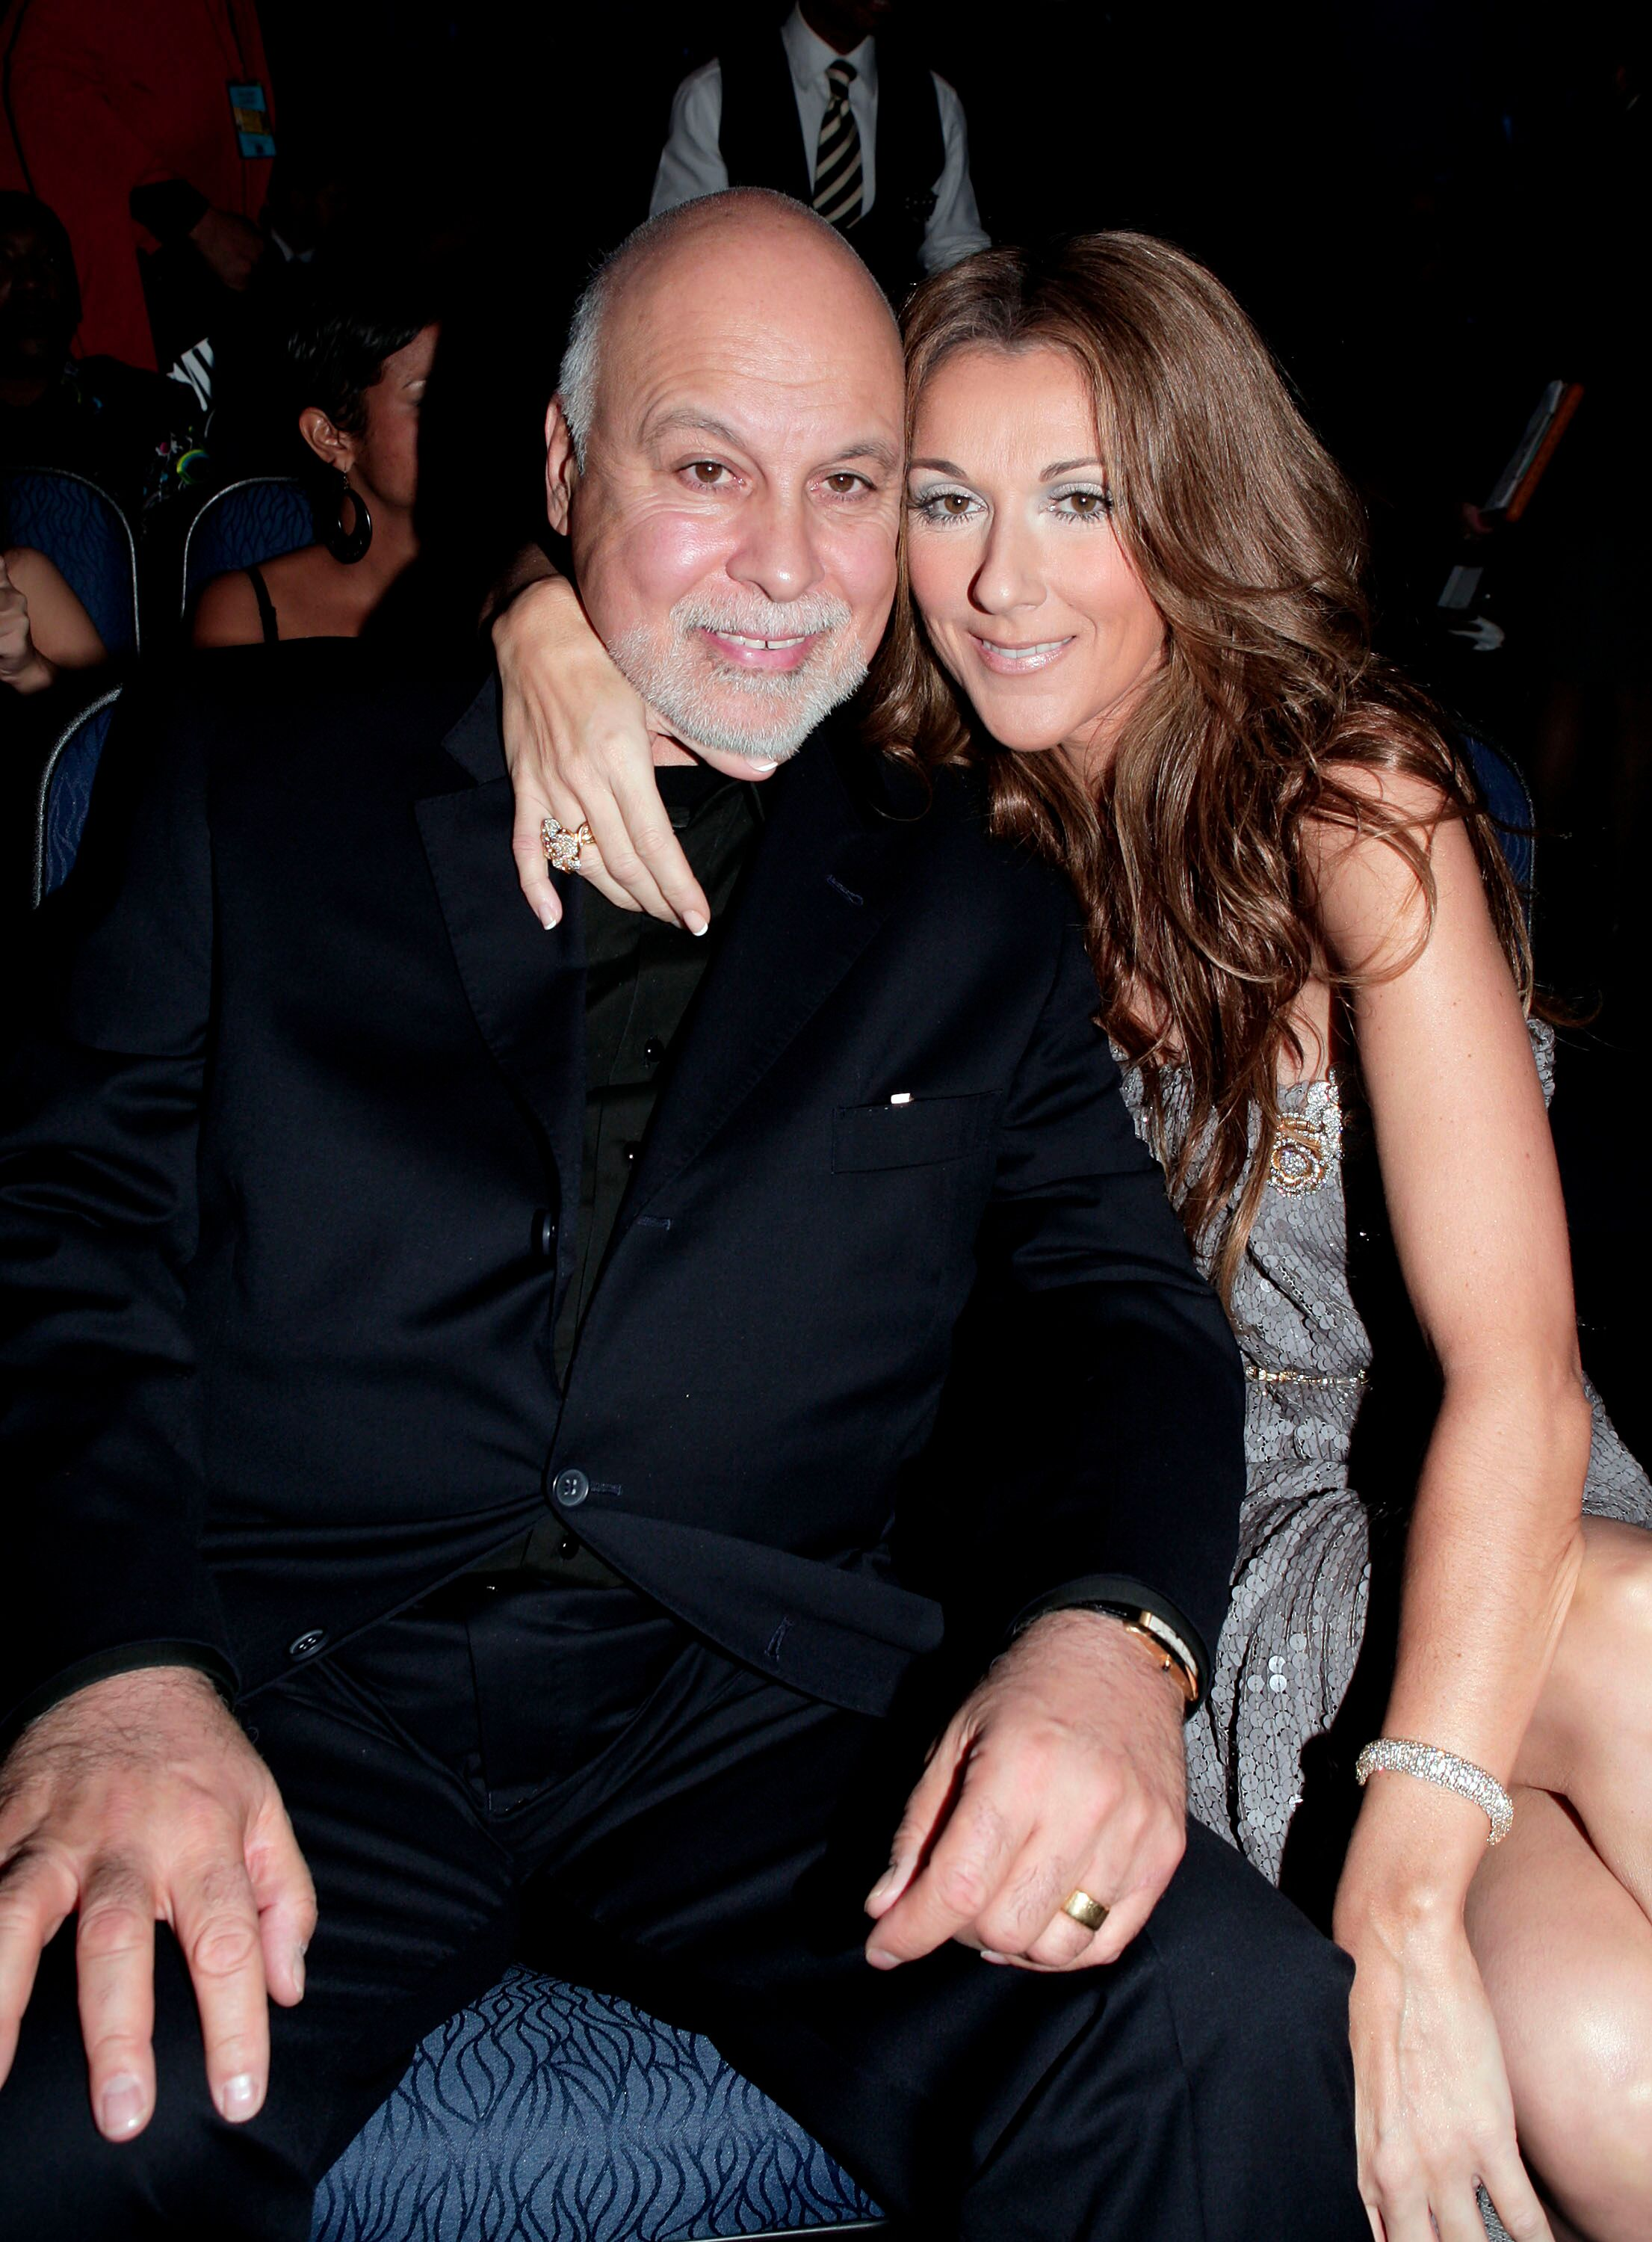 Celine Dion and husband Rene Angelil in the audience during the 2007 American Music Awards. | Source: Getty Images